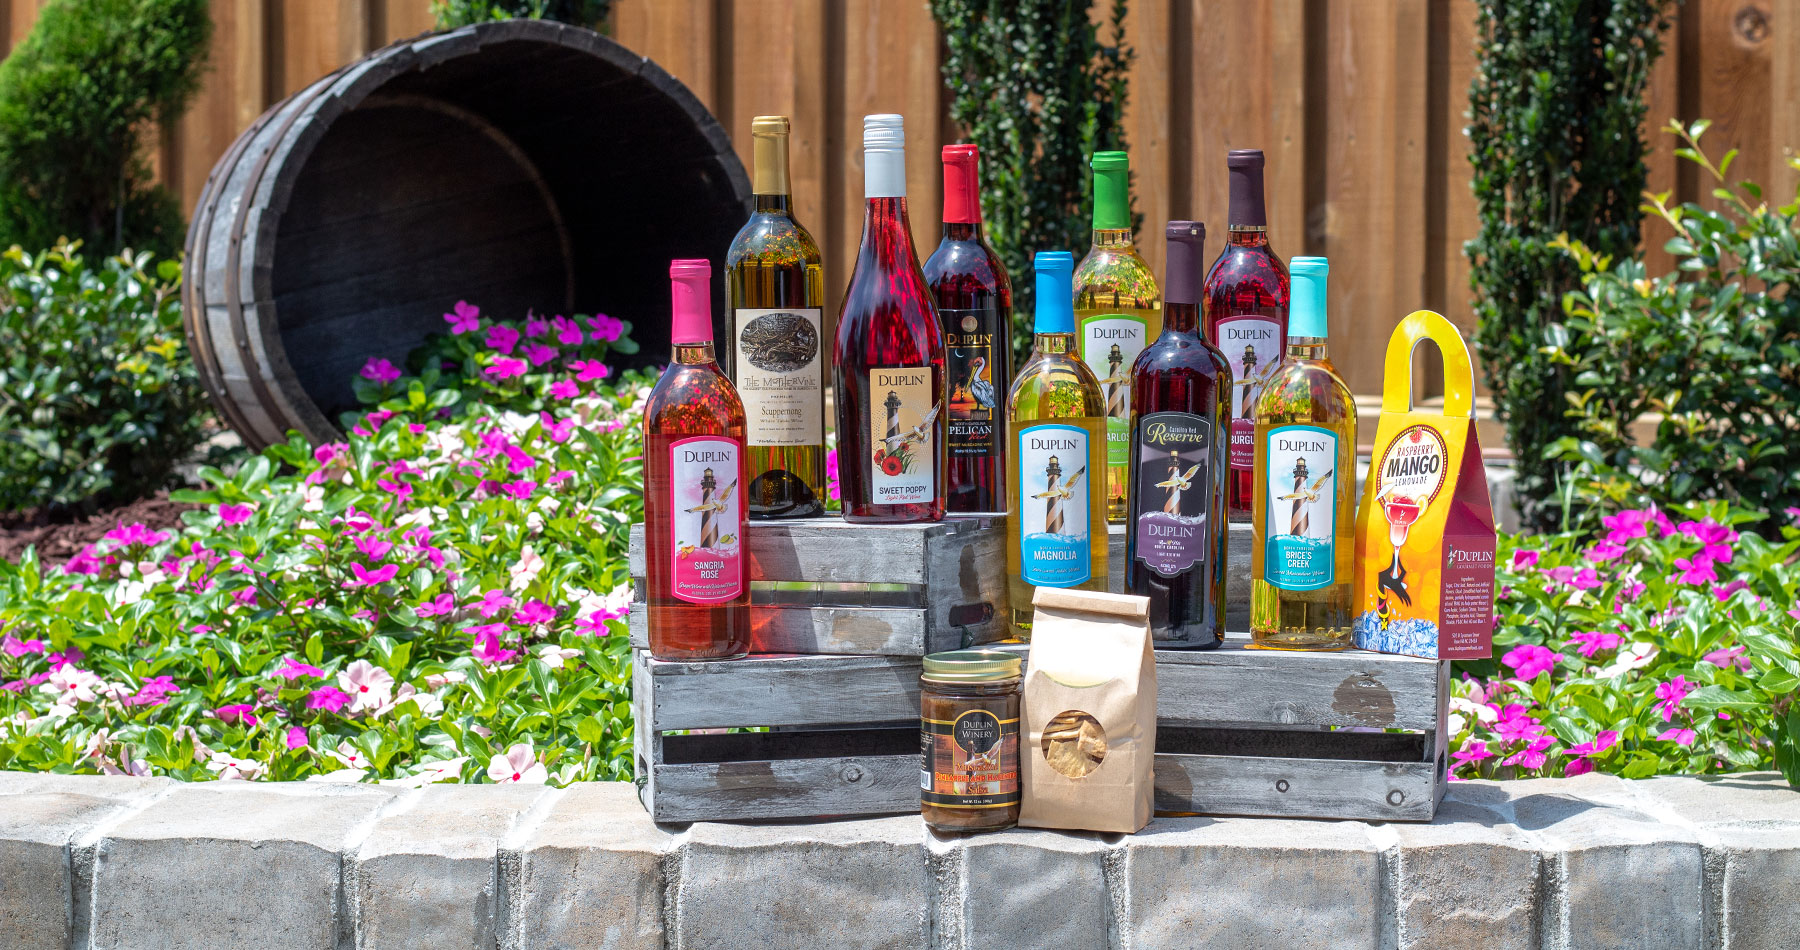 Duplin Winery At Home Wine Tasting Kits include wines we serve in our tasting rooms.